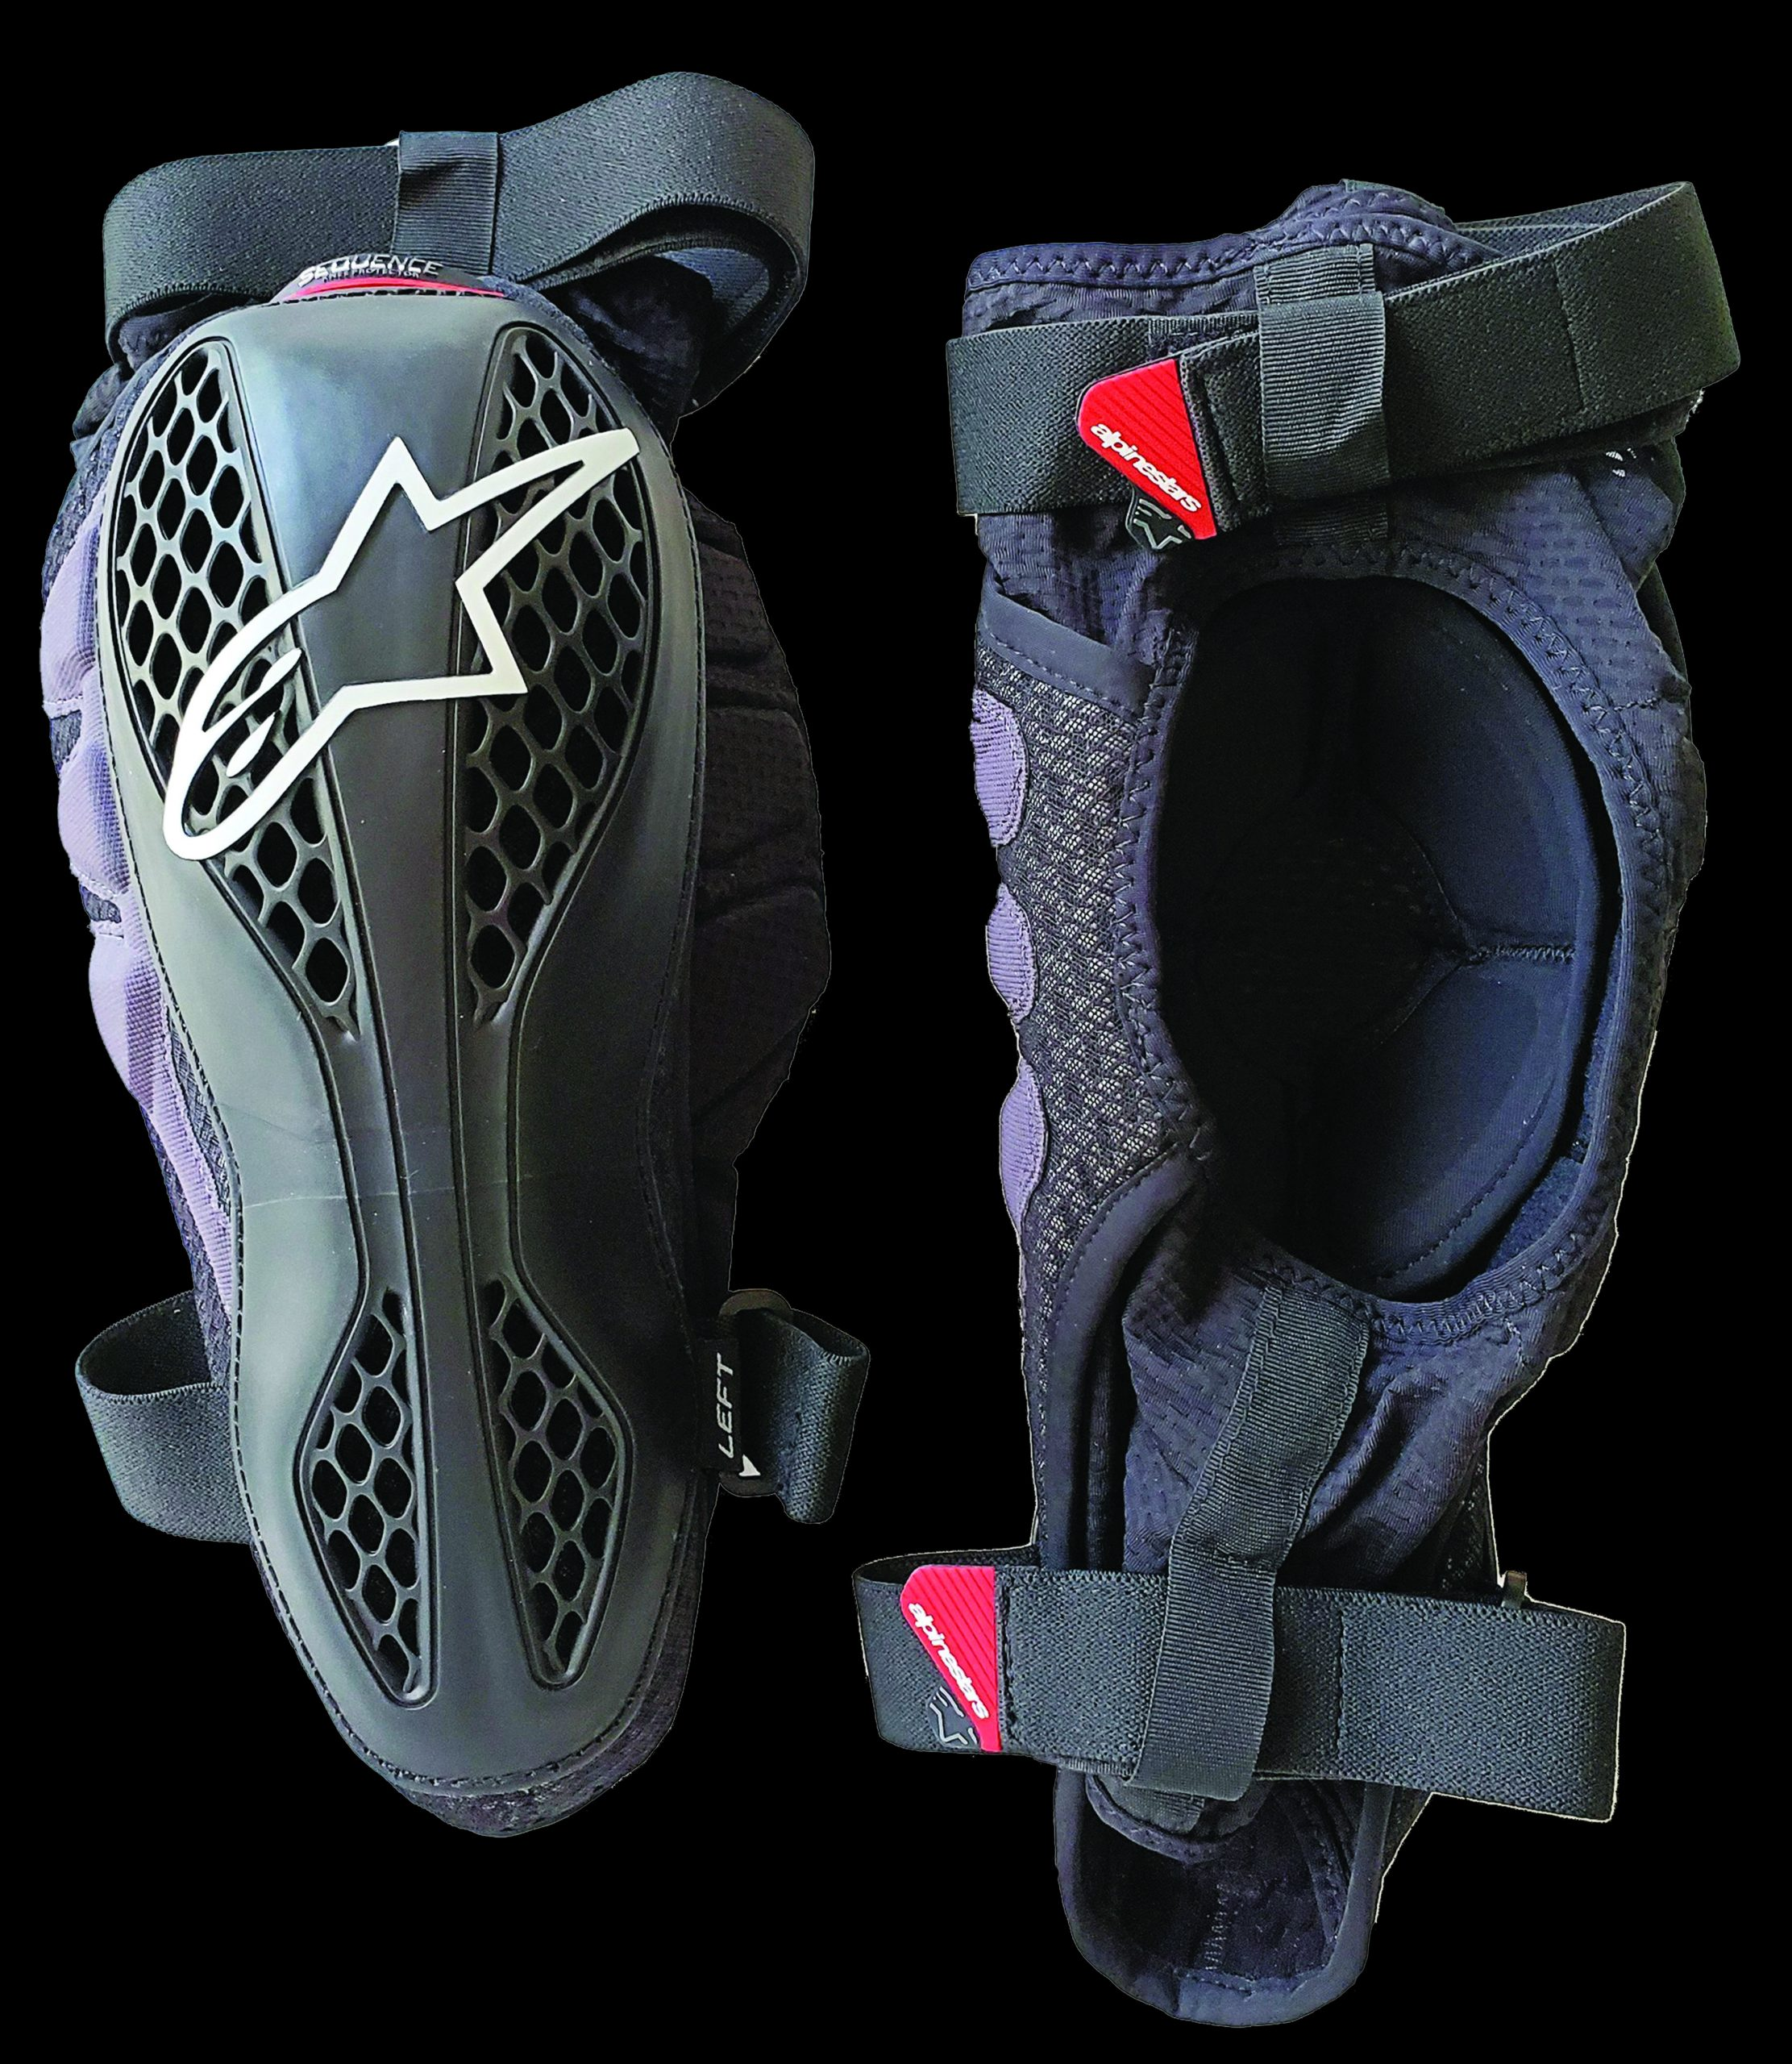 Product Comparison: Knee Protection 101